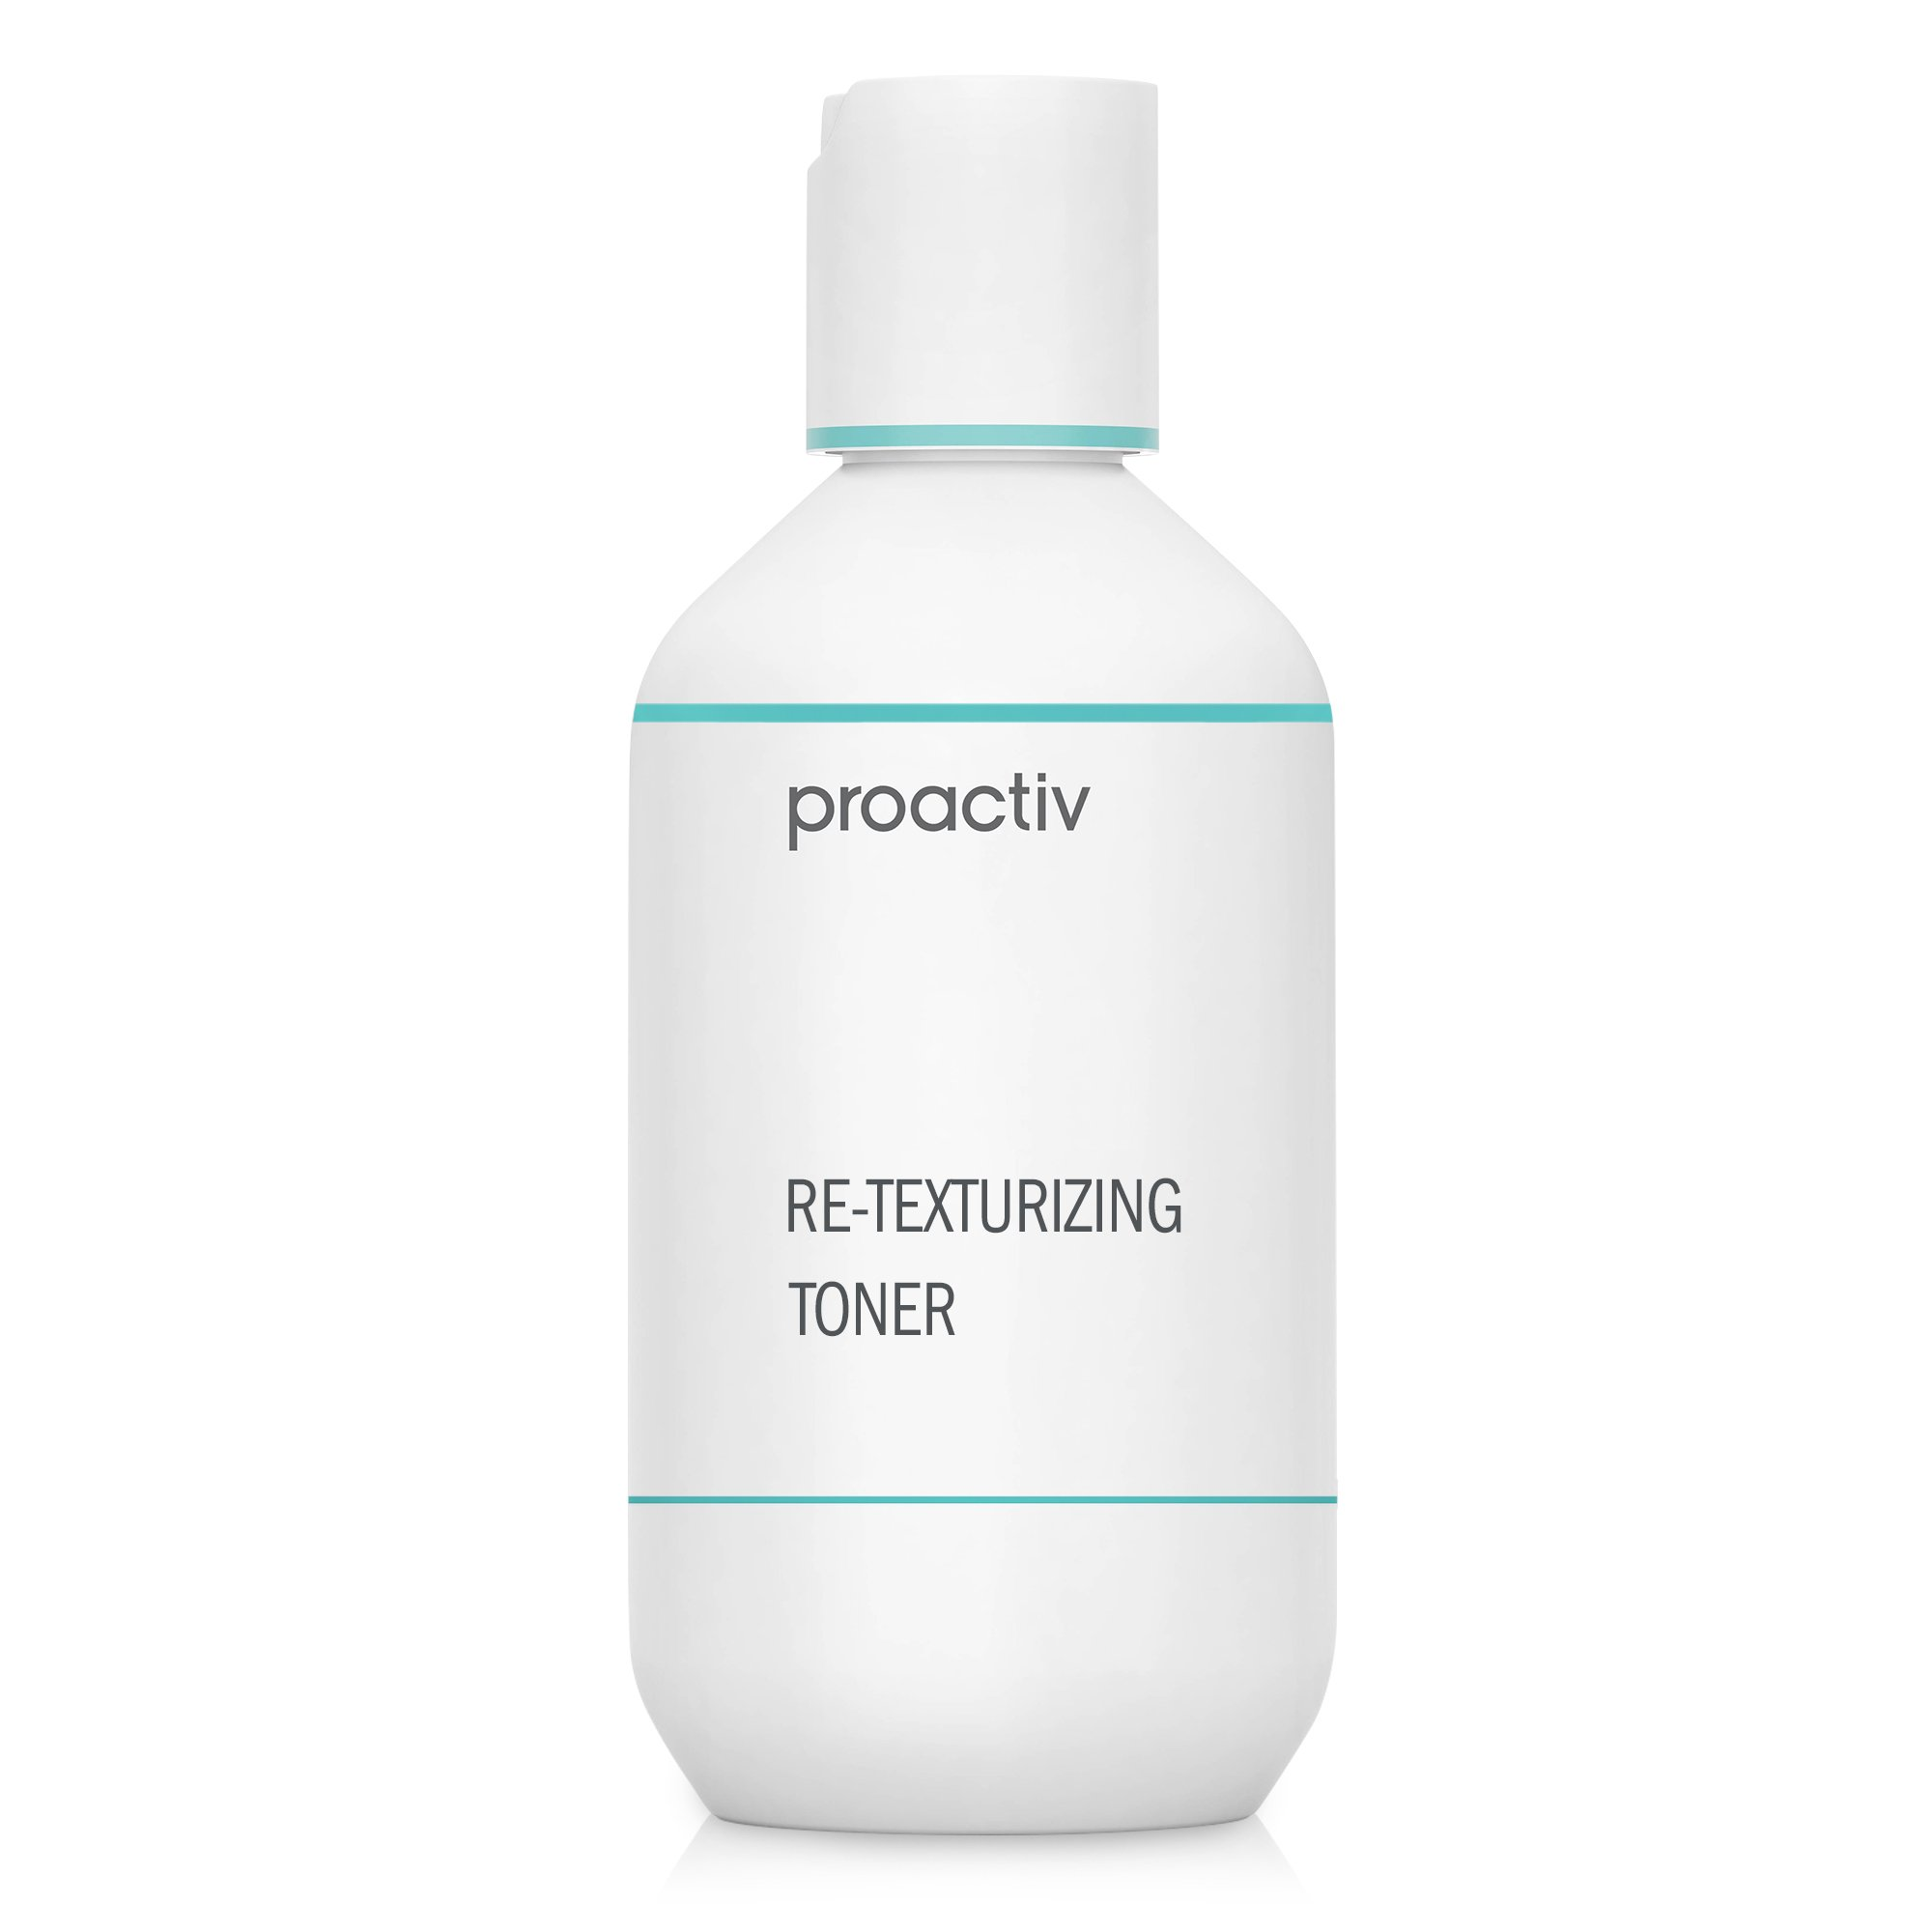 Proactiv Re-texturizing Toner, 6 Ounce (with 90 Pads)